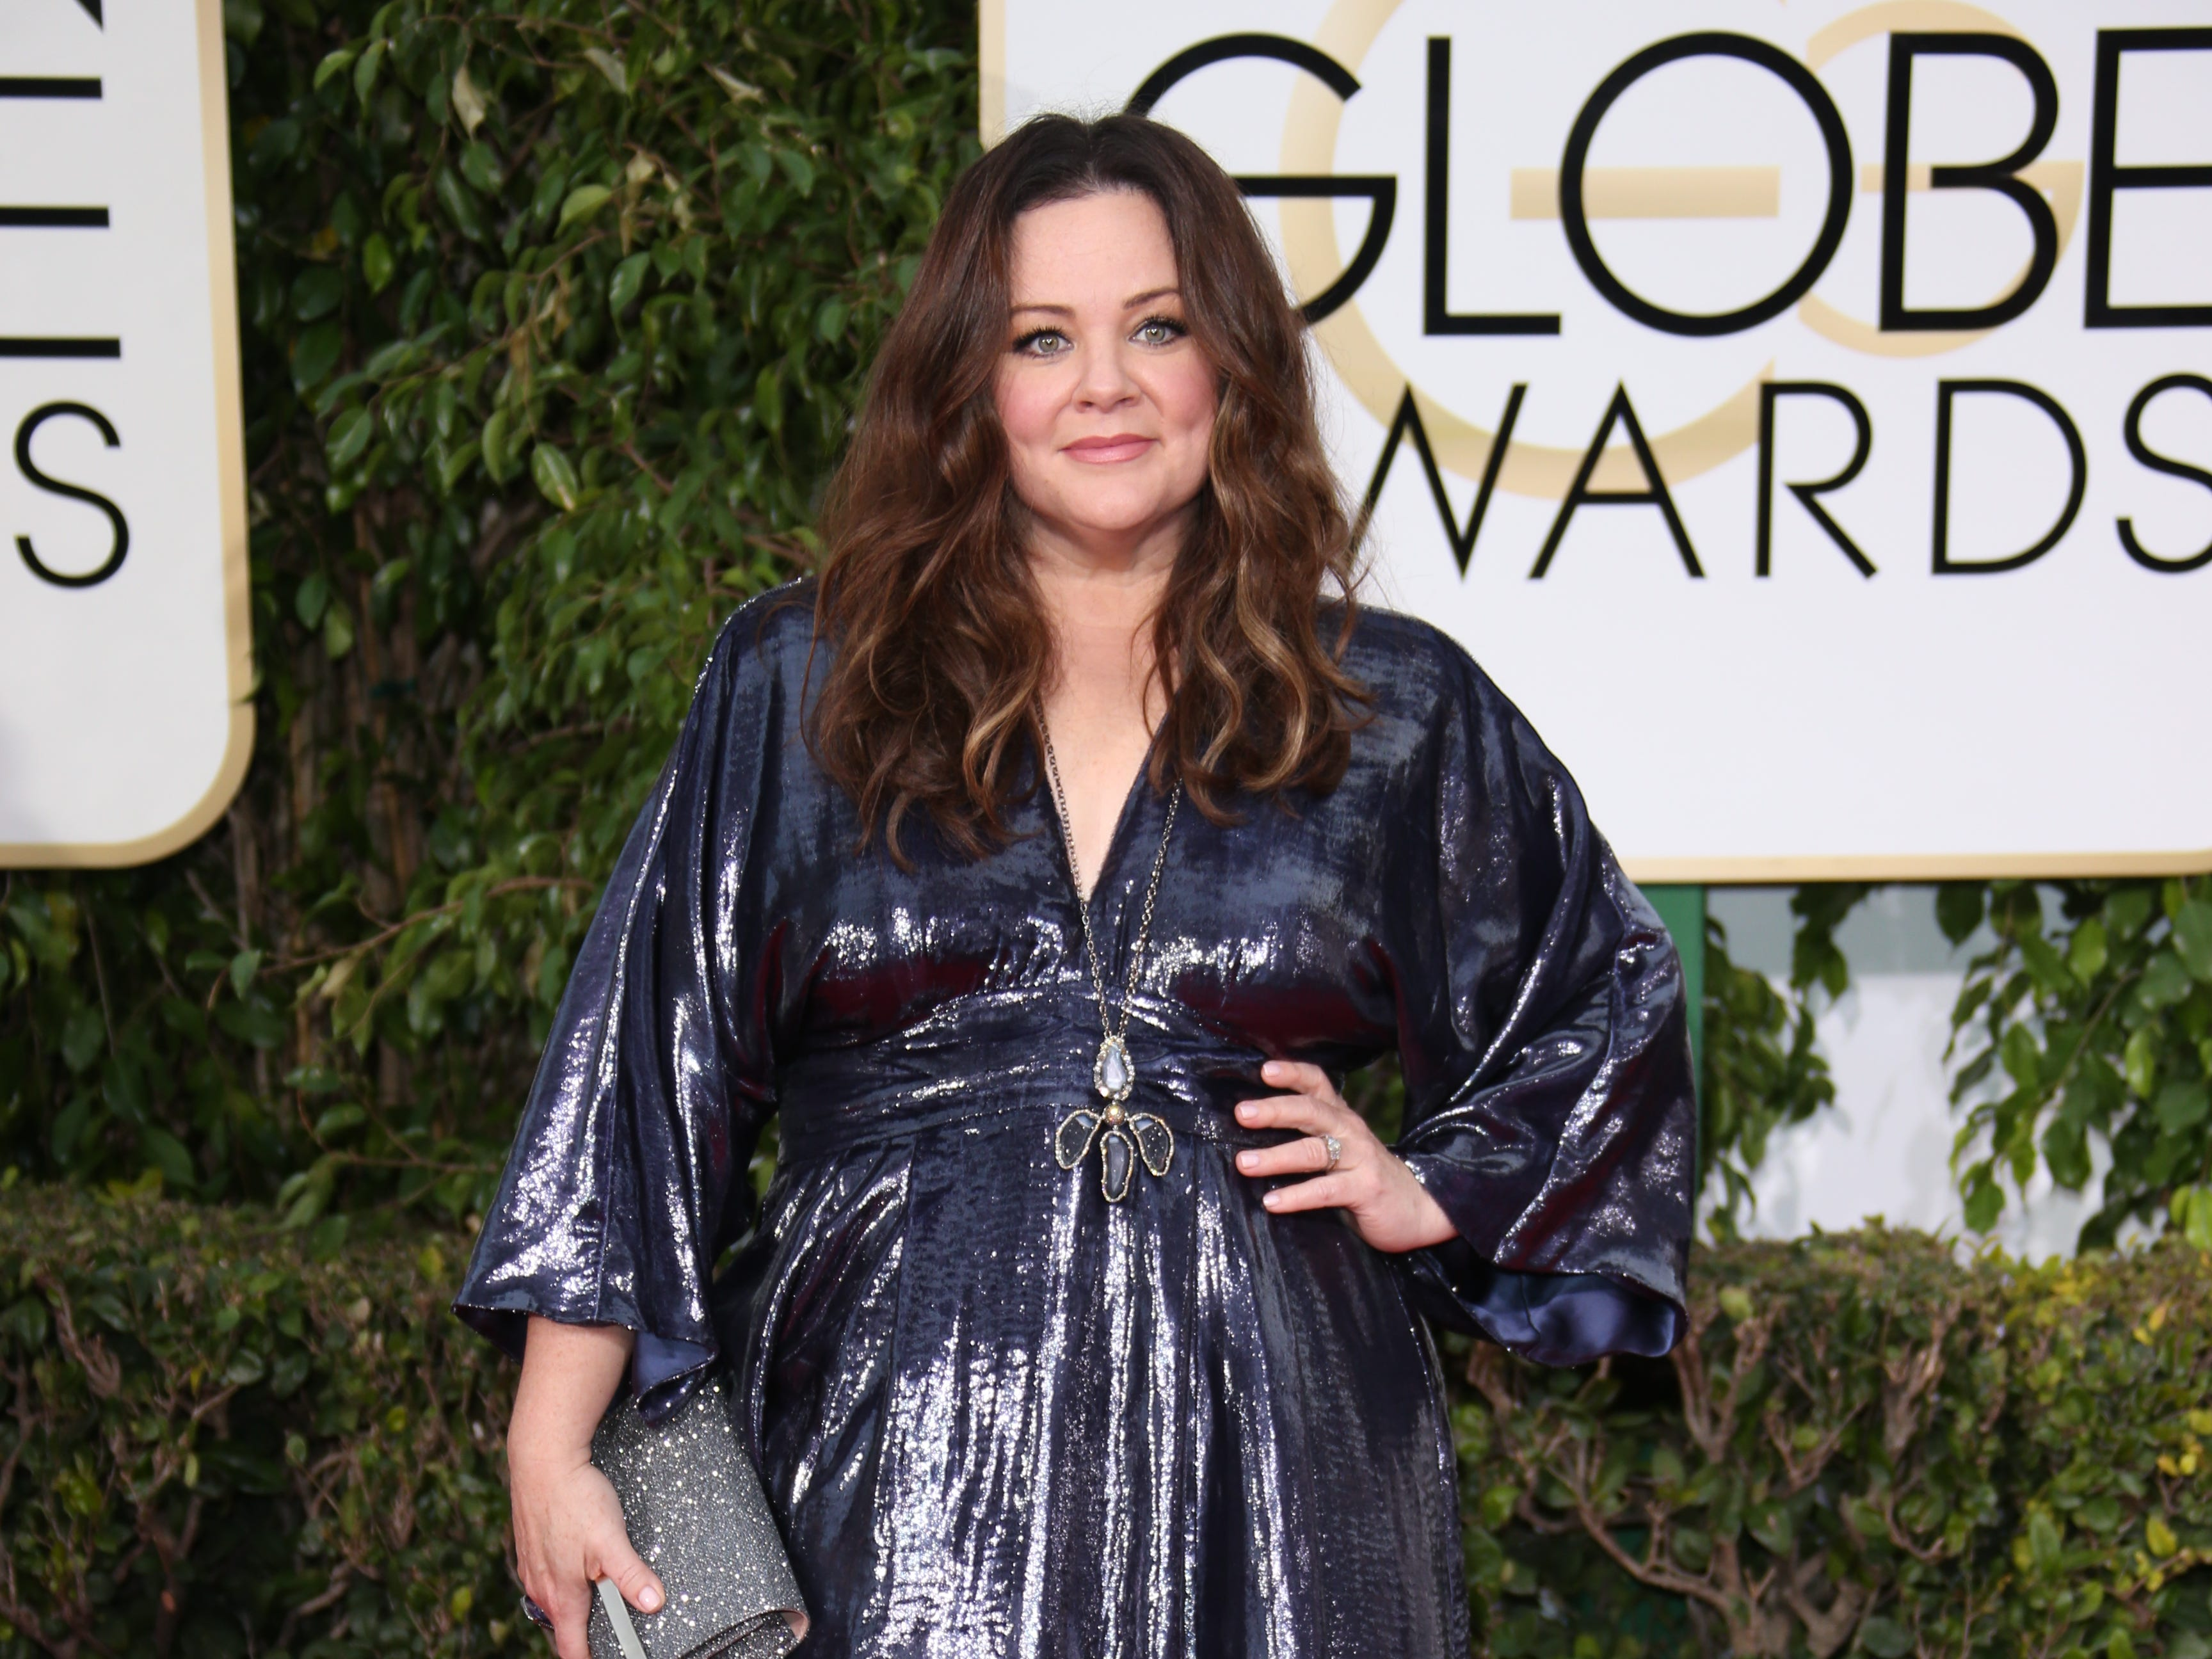 1/10/16 4:27:14 PM -- Beverly Hills, CA, U.S.A  -- Melissa McCarthy arrives at the 73rd Annual Golden Globe Awards at the Beverly Hilton Hotel. --    Photo by Dan MacMedan, USA TODAY contract photographer  ORG XMIT:  DM 134309 GOLDEN GLOBE AWA 1/10/2016 (Via OlyDrop)